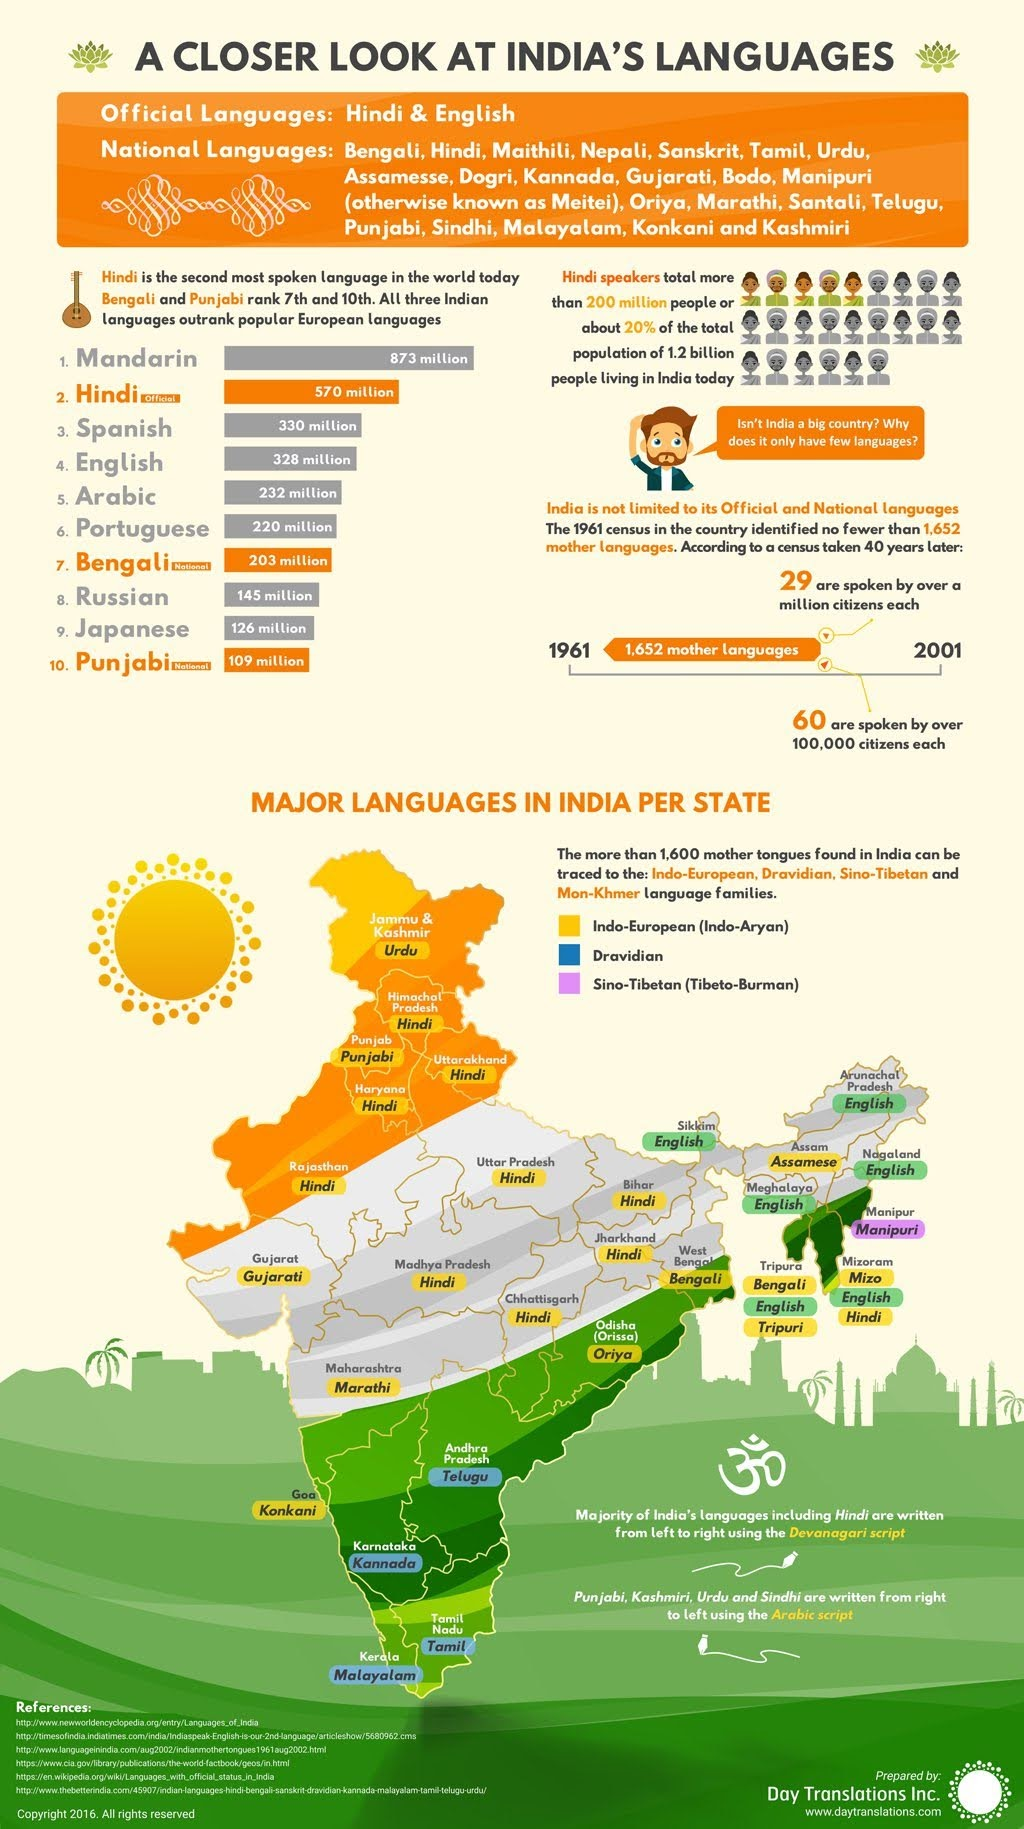 A Closer Look at India's languages #infographic